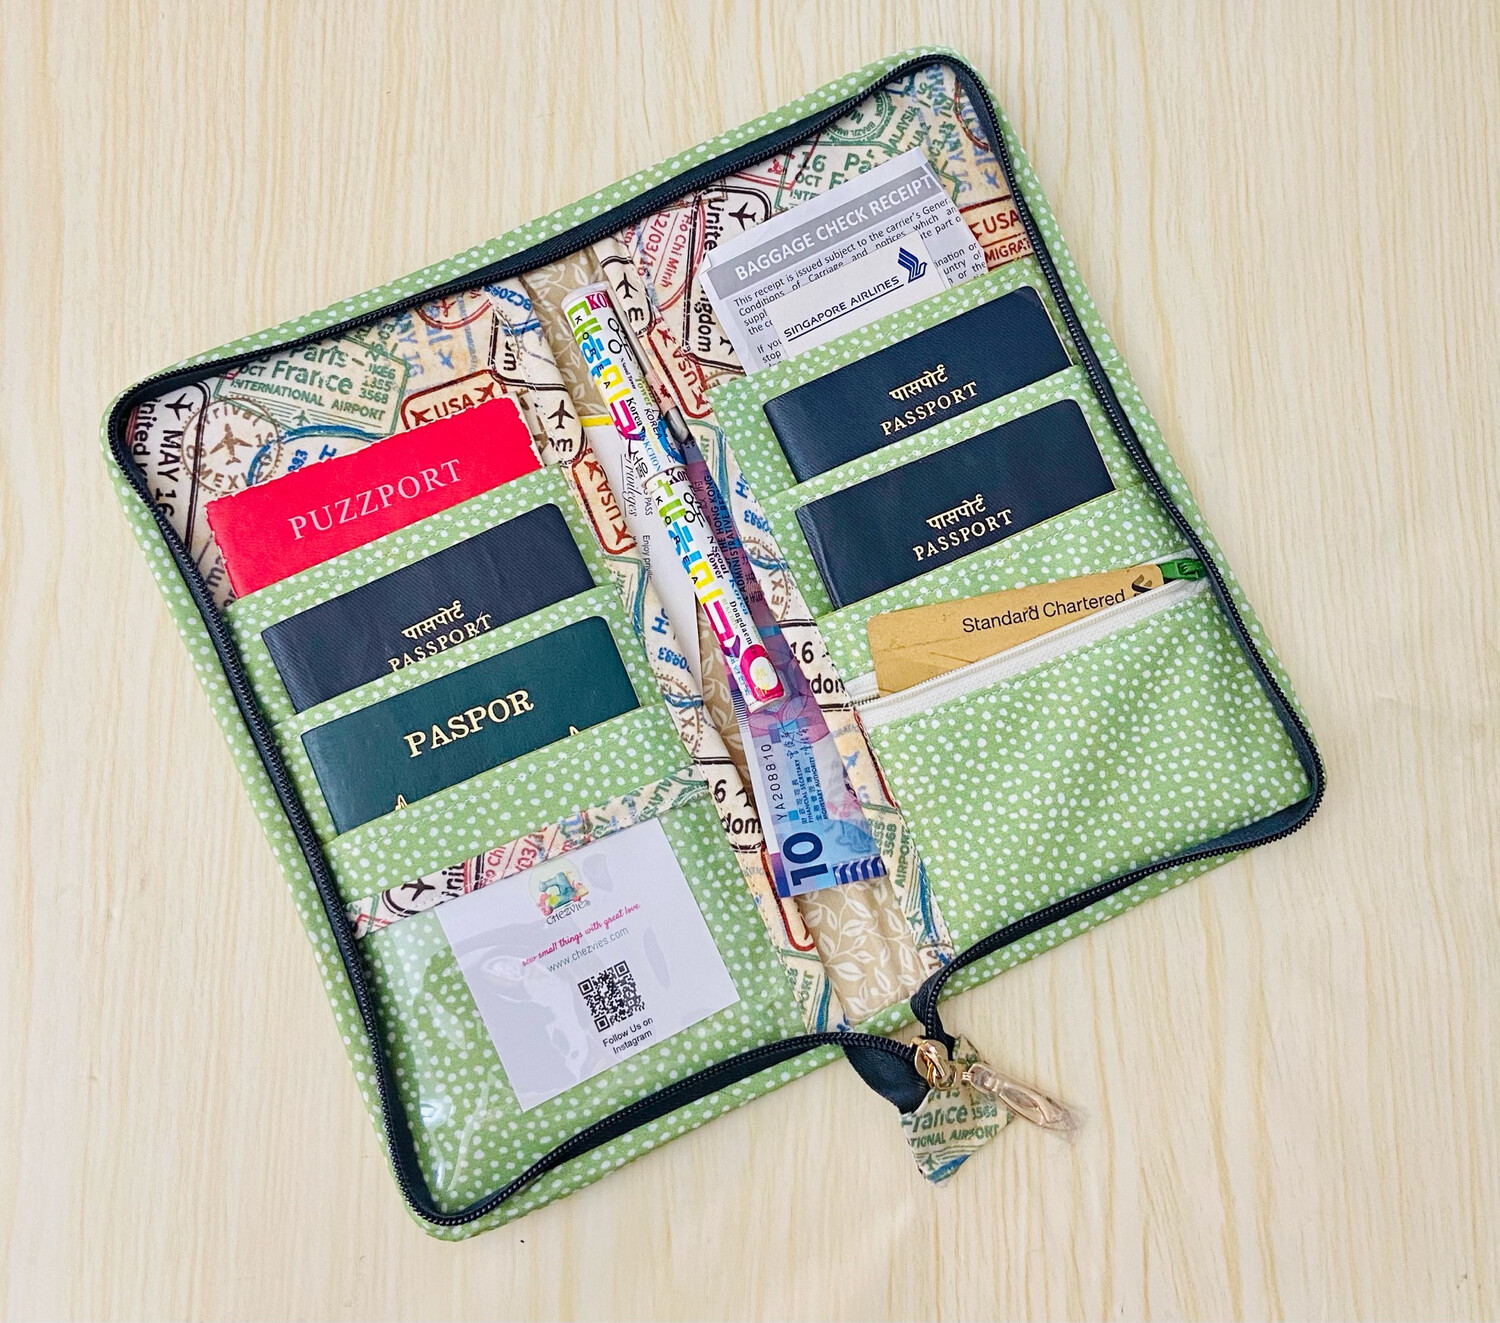 Family Passport And Boarding Pass Holder For 6 with Zipper Closure